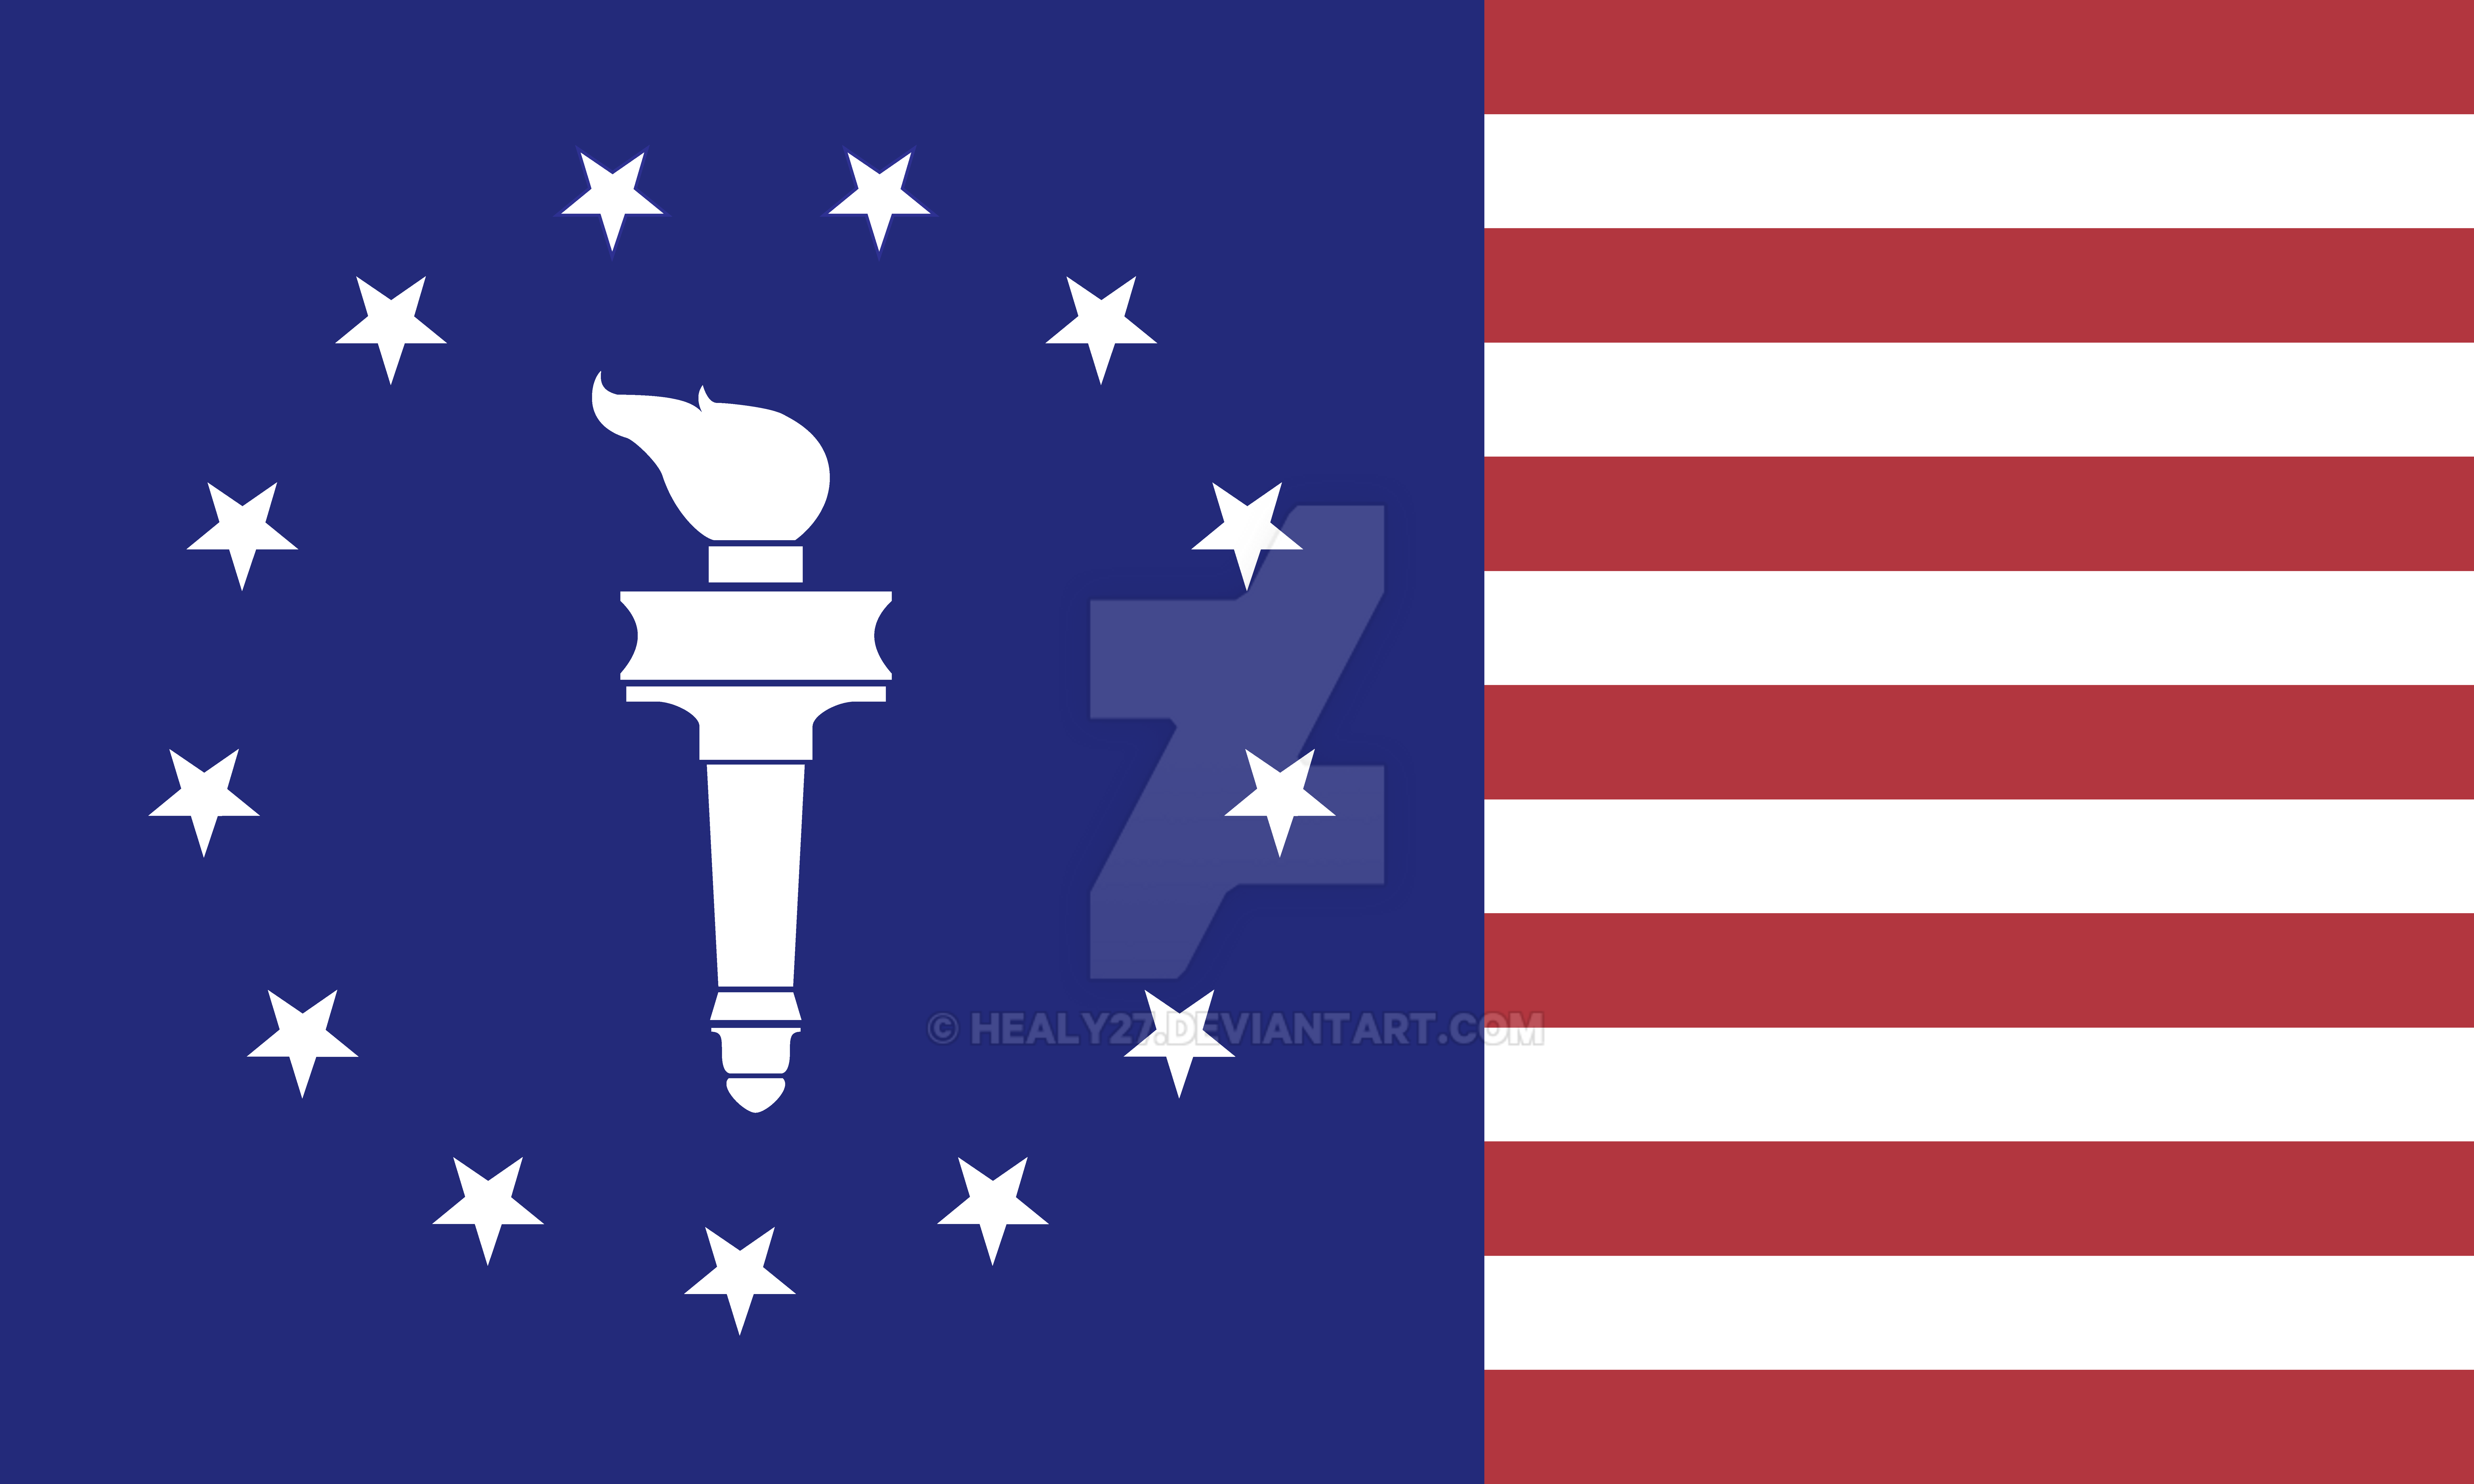 Flag of the United States - Wikipedia